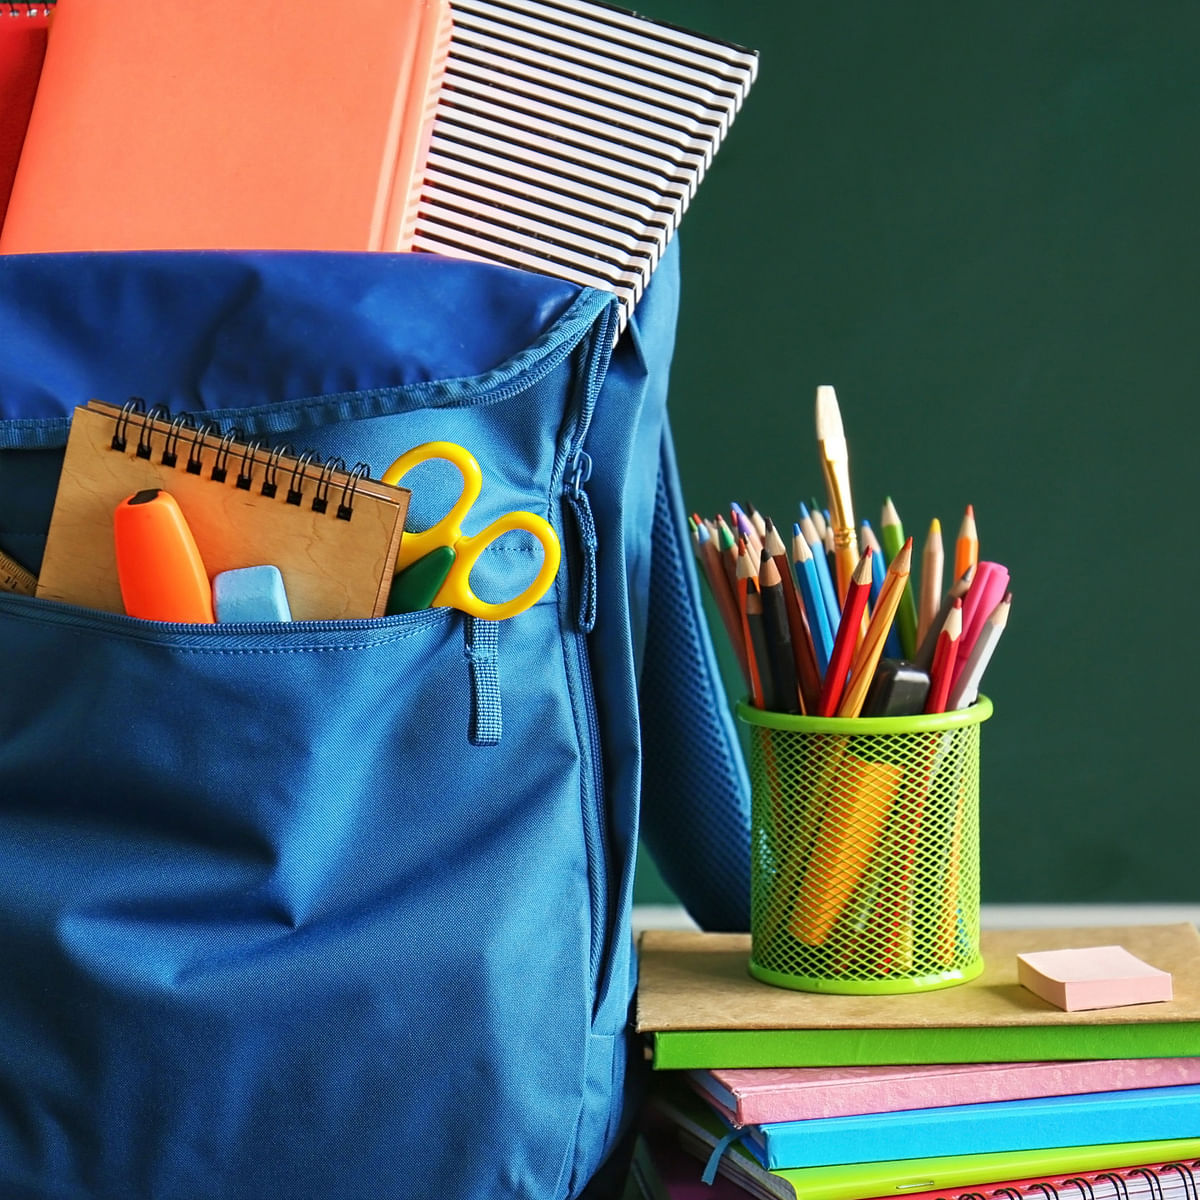 Schools to reopen from October 15: Union Ministry of Education under central government issues guidelines